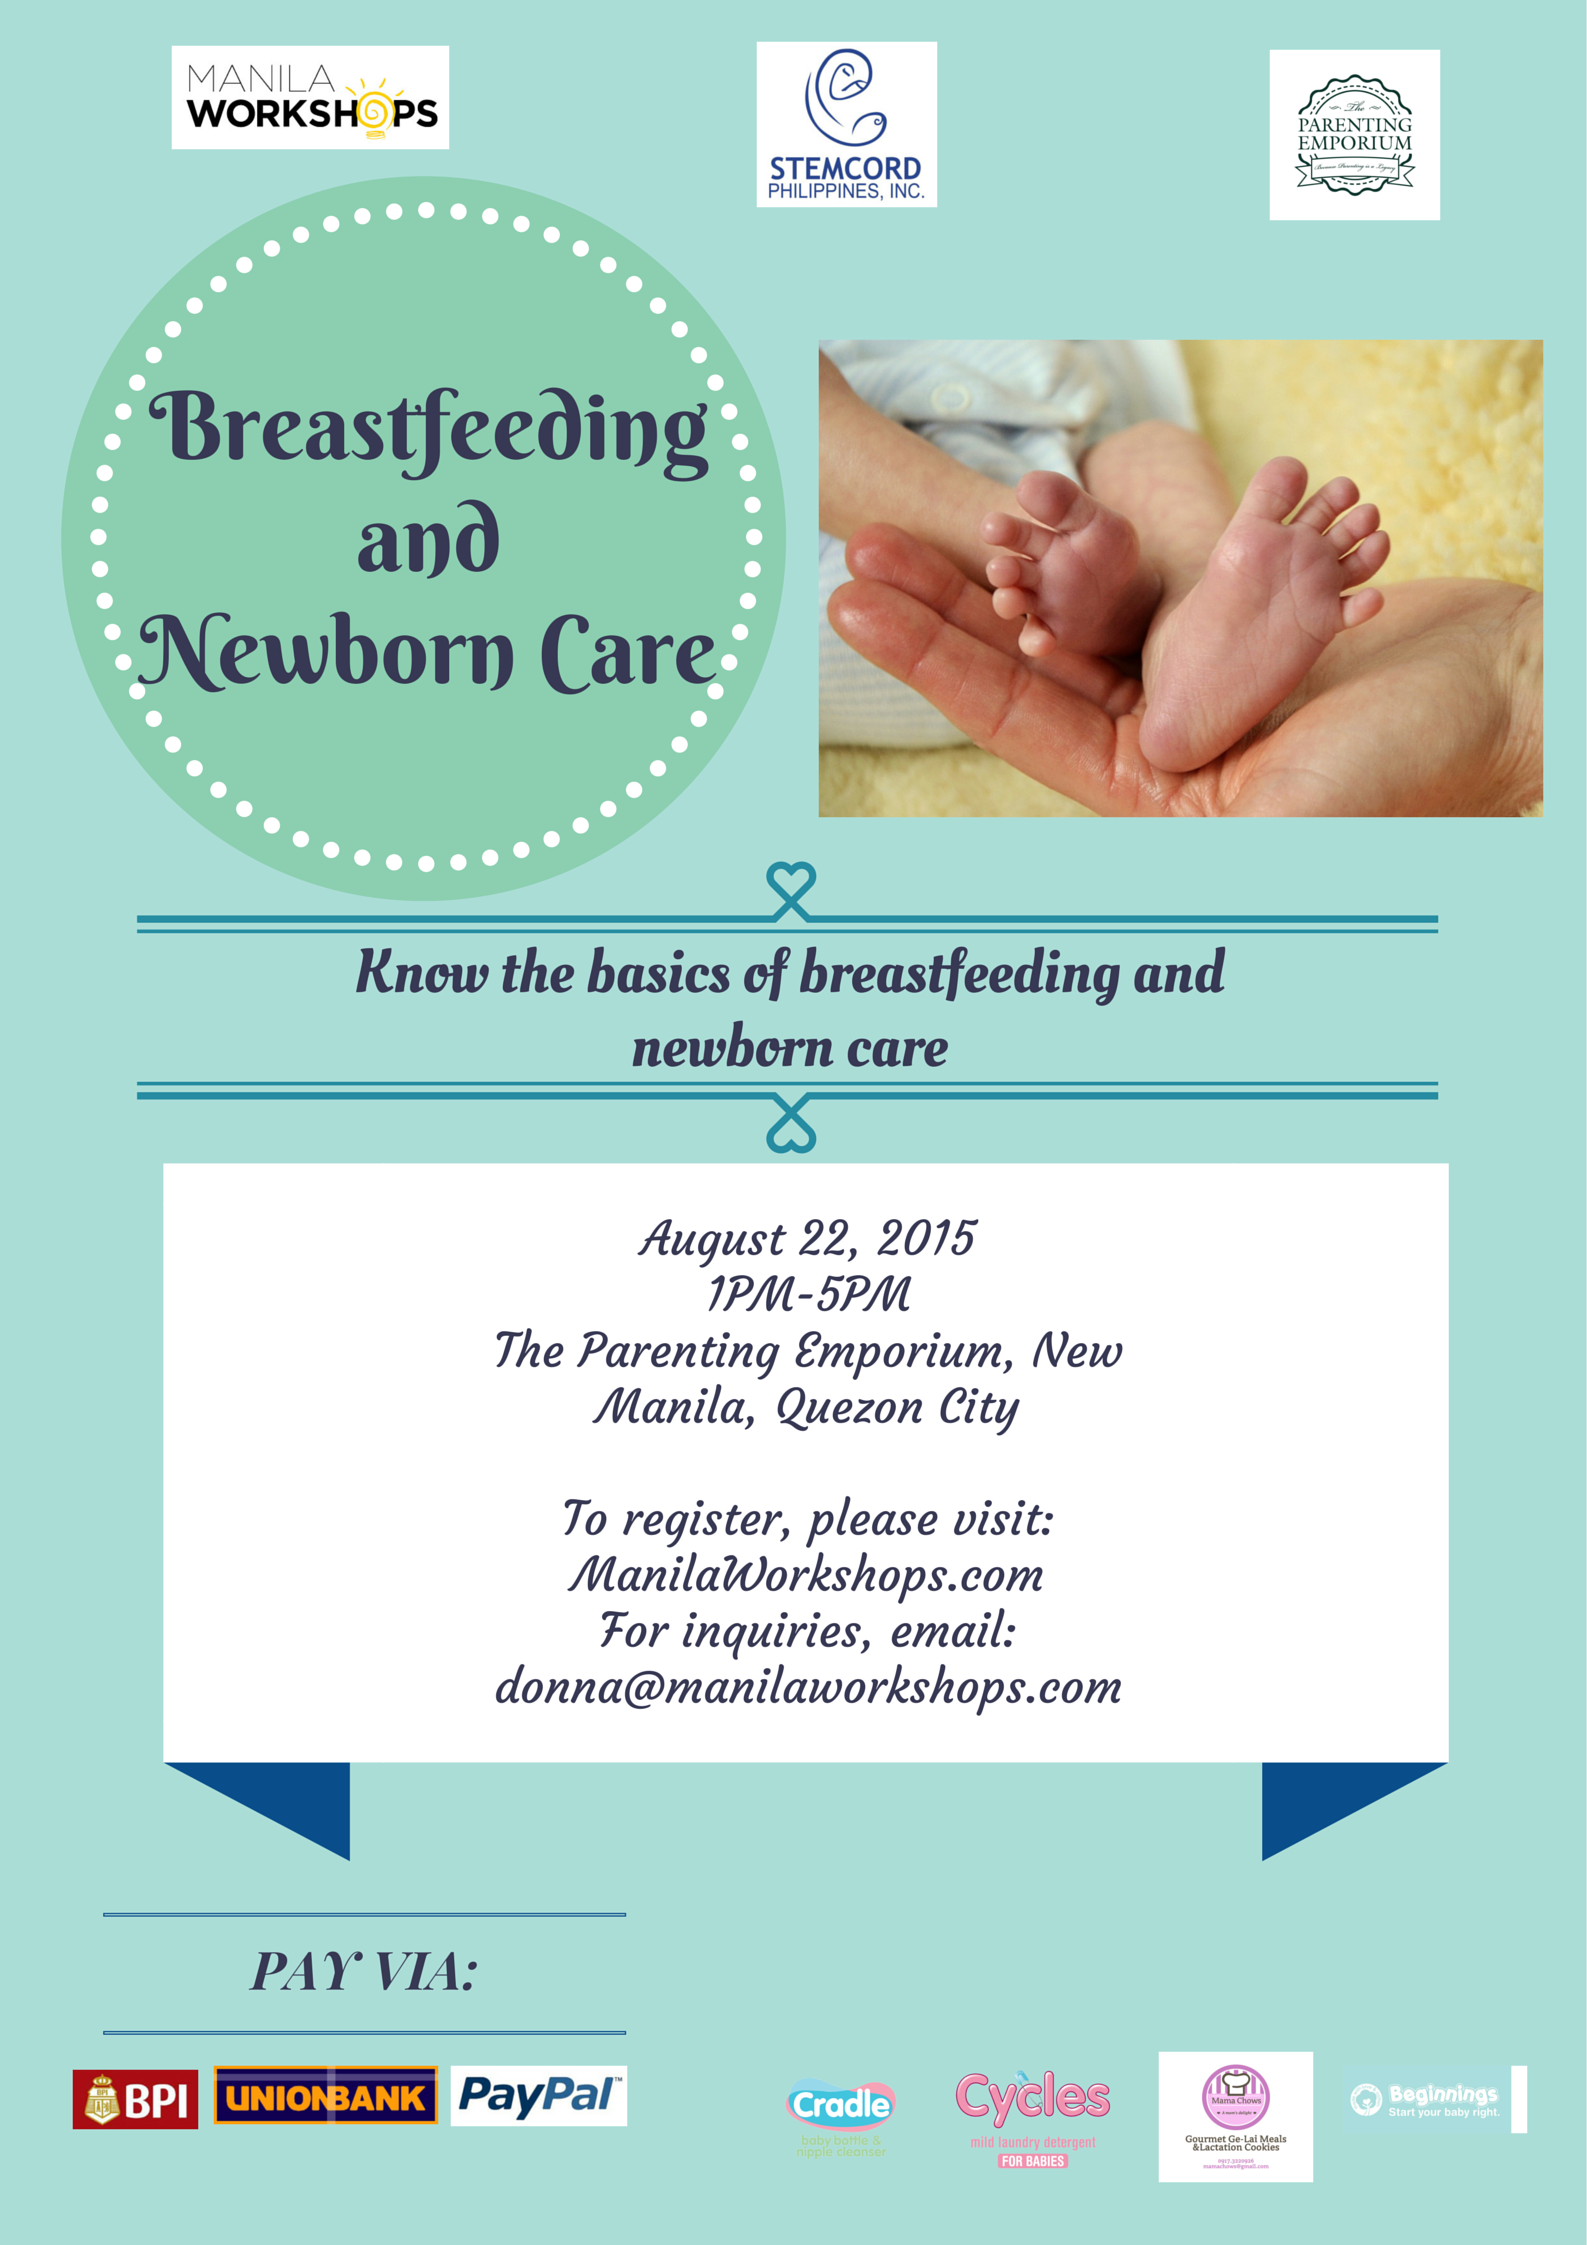 Breastfeeding and Newborn Care workshop